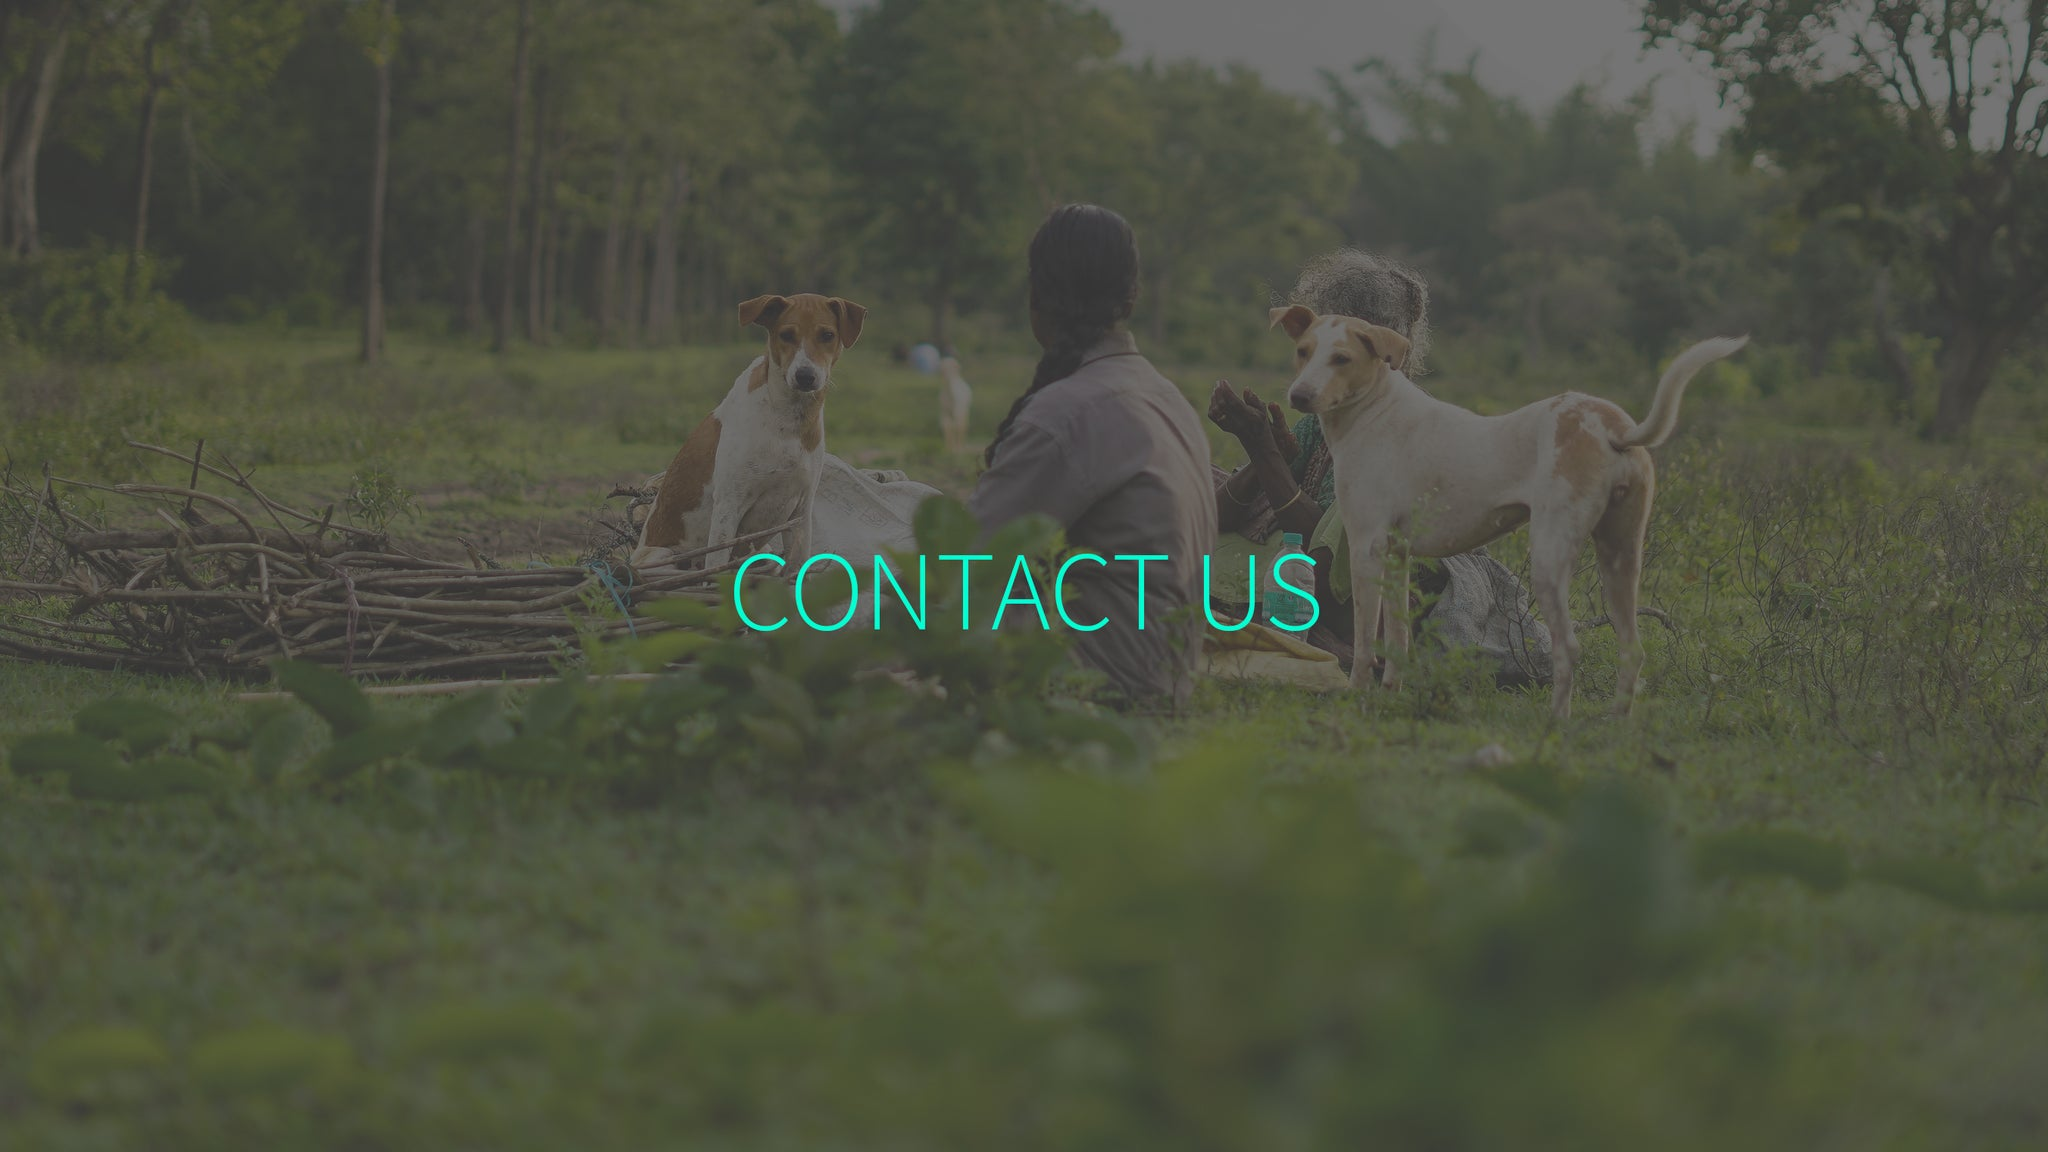 Cute Happy Dogs Contact Us Dog Collection Store Faith Trust Relationship